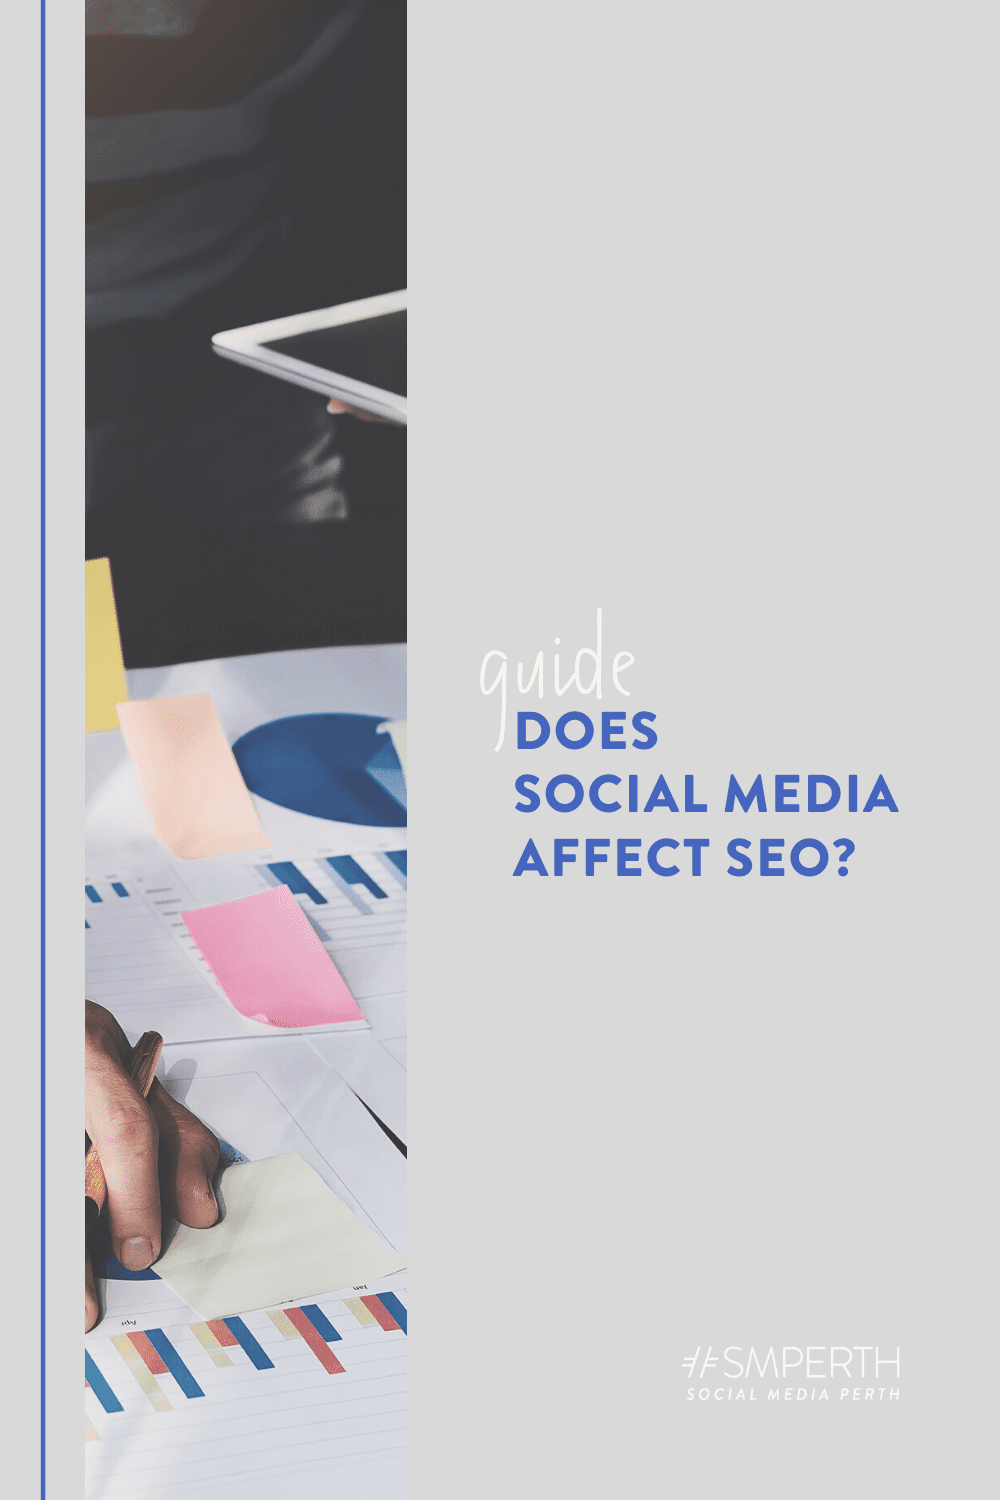 Does social media affect SEO?